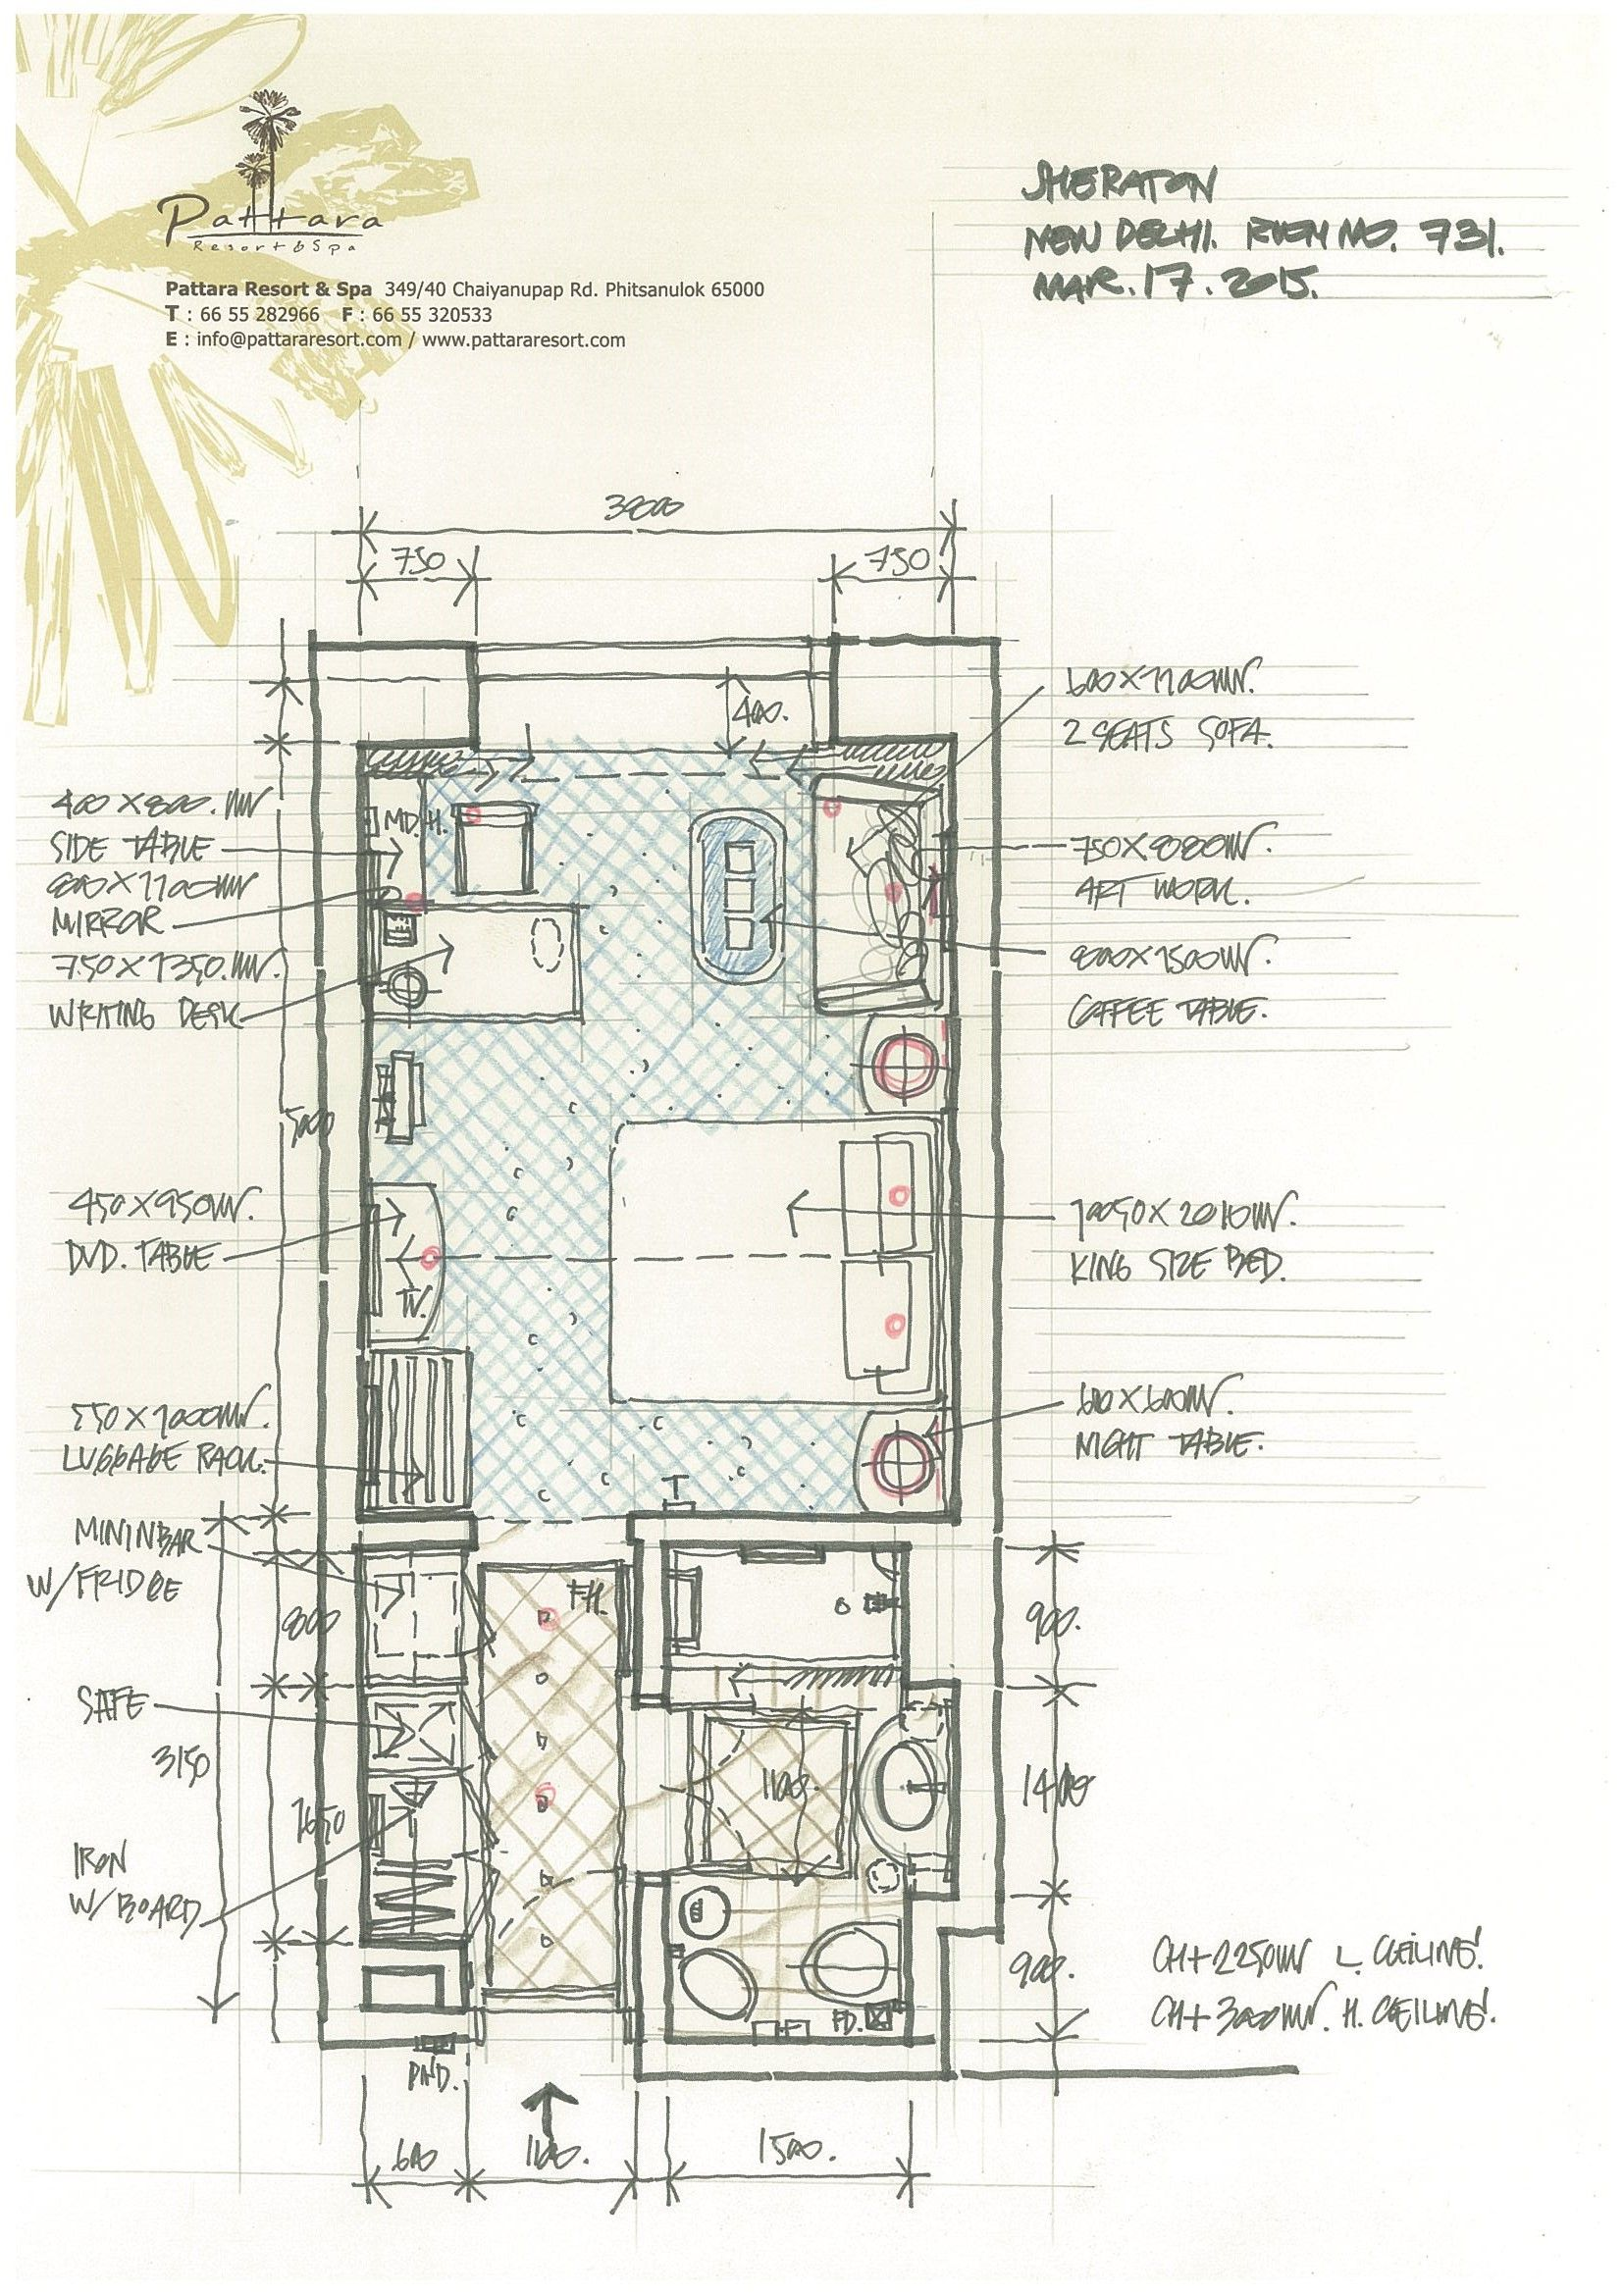 Pattara resort spa a interior hotel plan pinterest for Hotel plan design